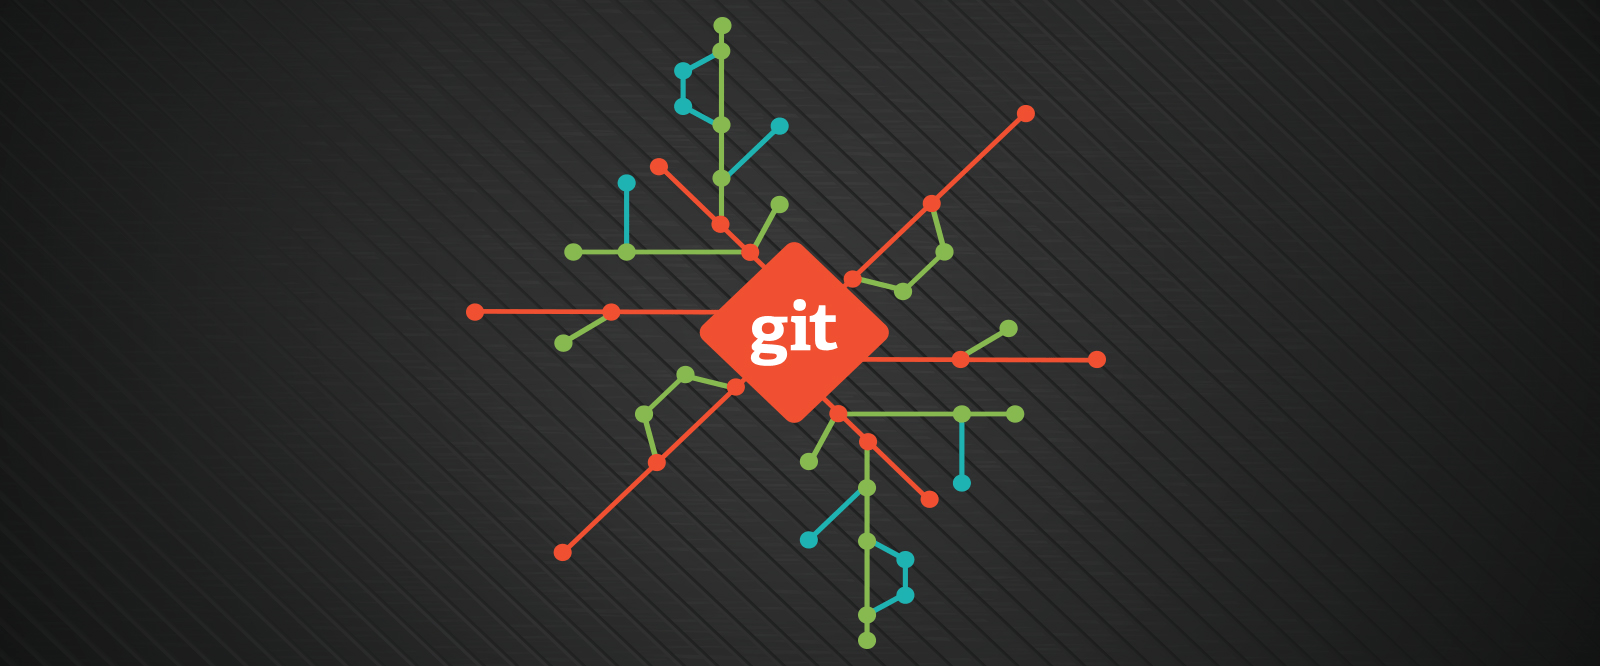 Become A Git Pro In Just One Blog A Thorough Guide To Git